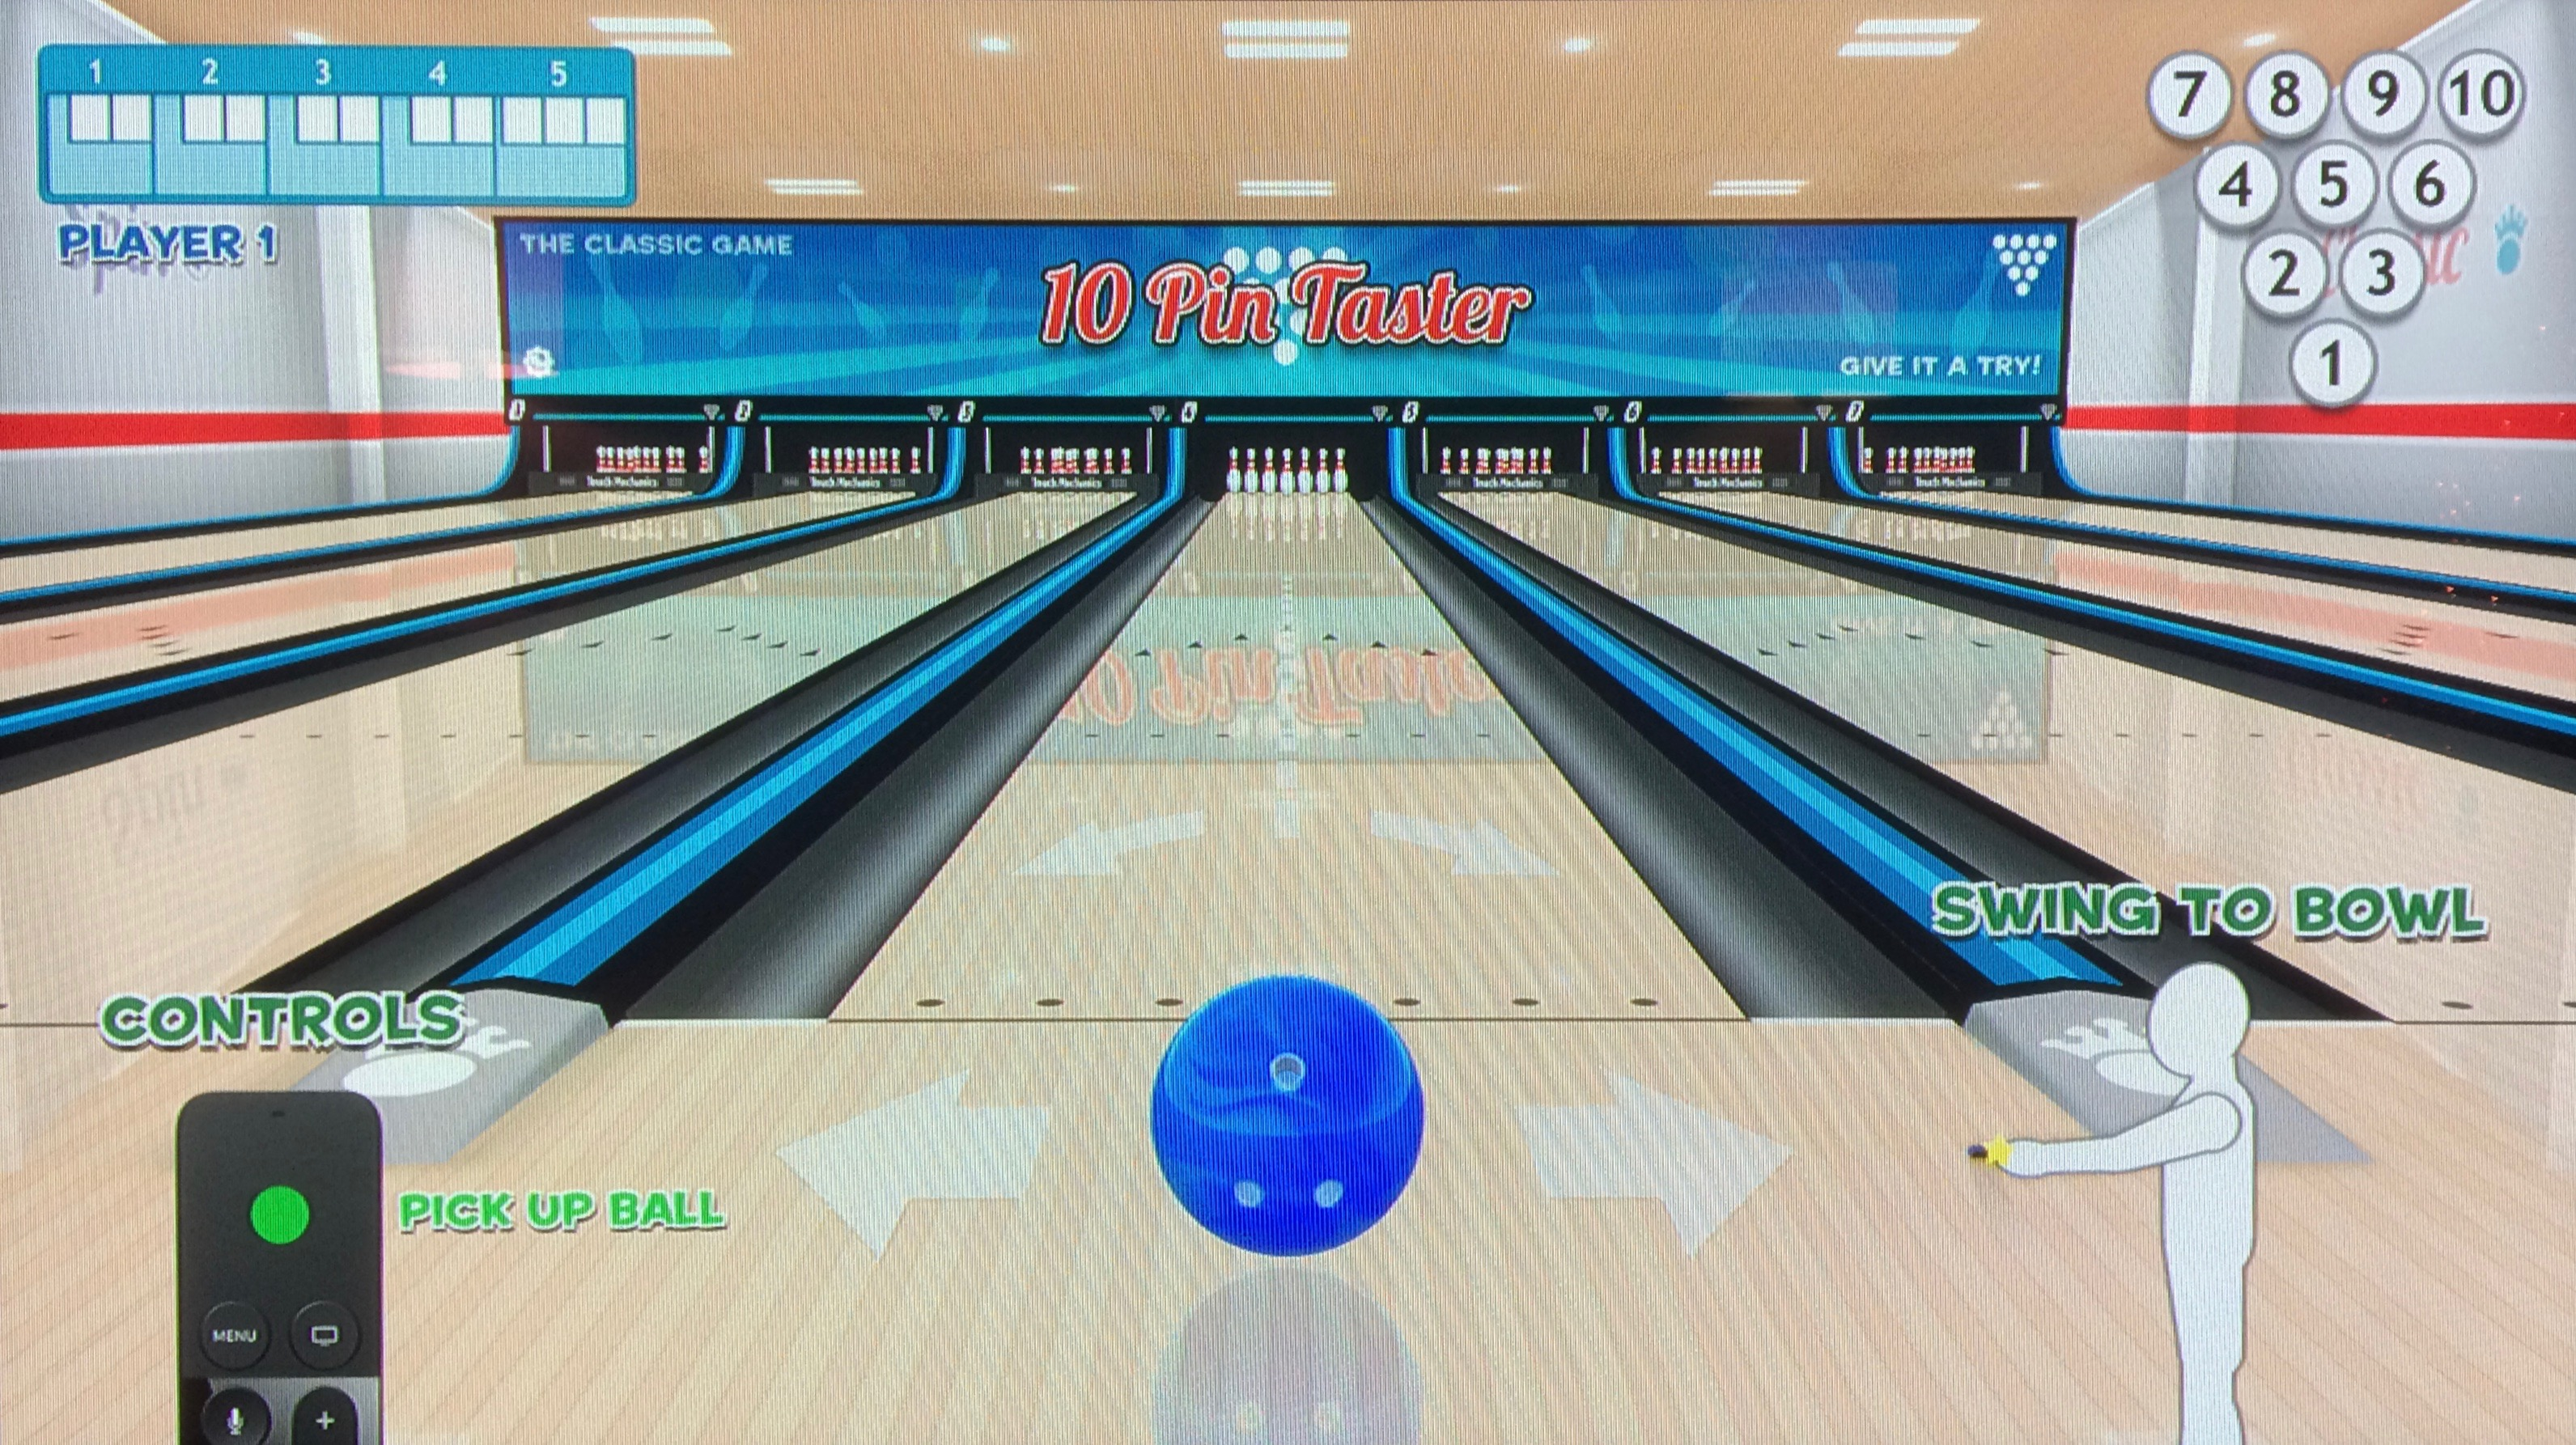 Strike Ten-Pin Bowling Apple TV